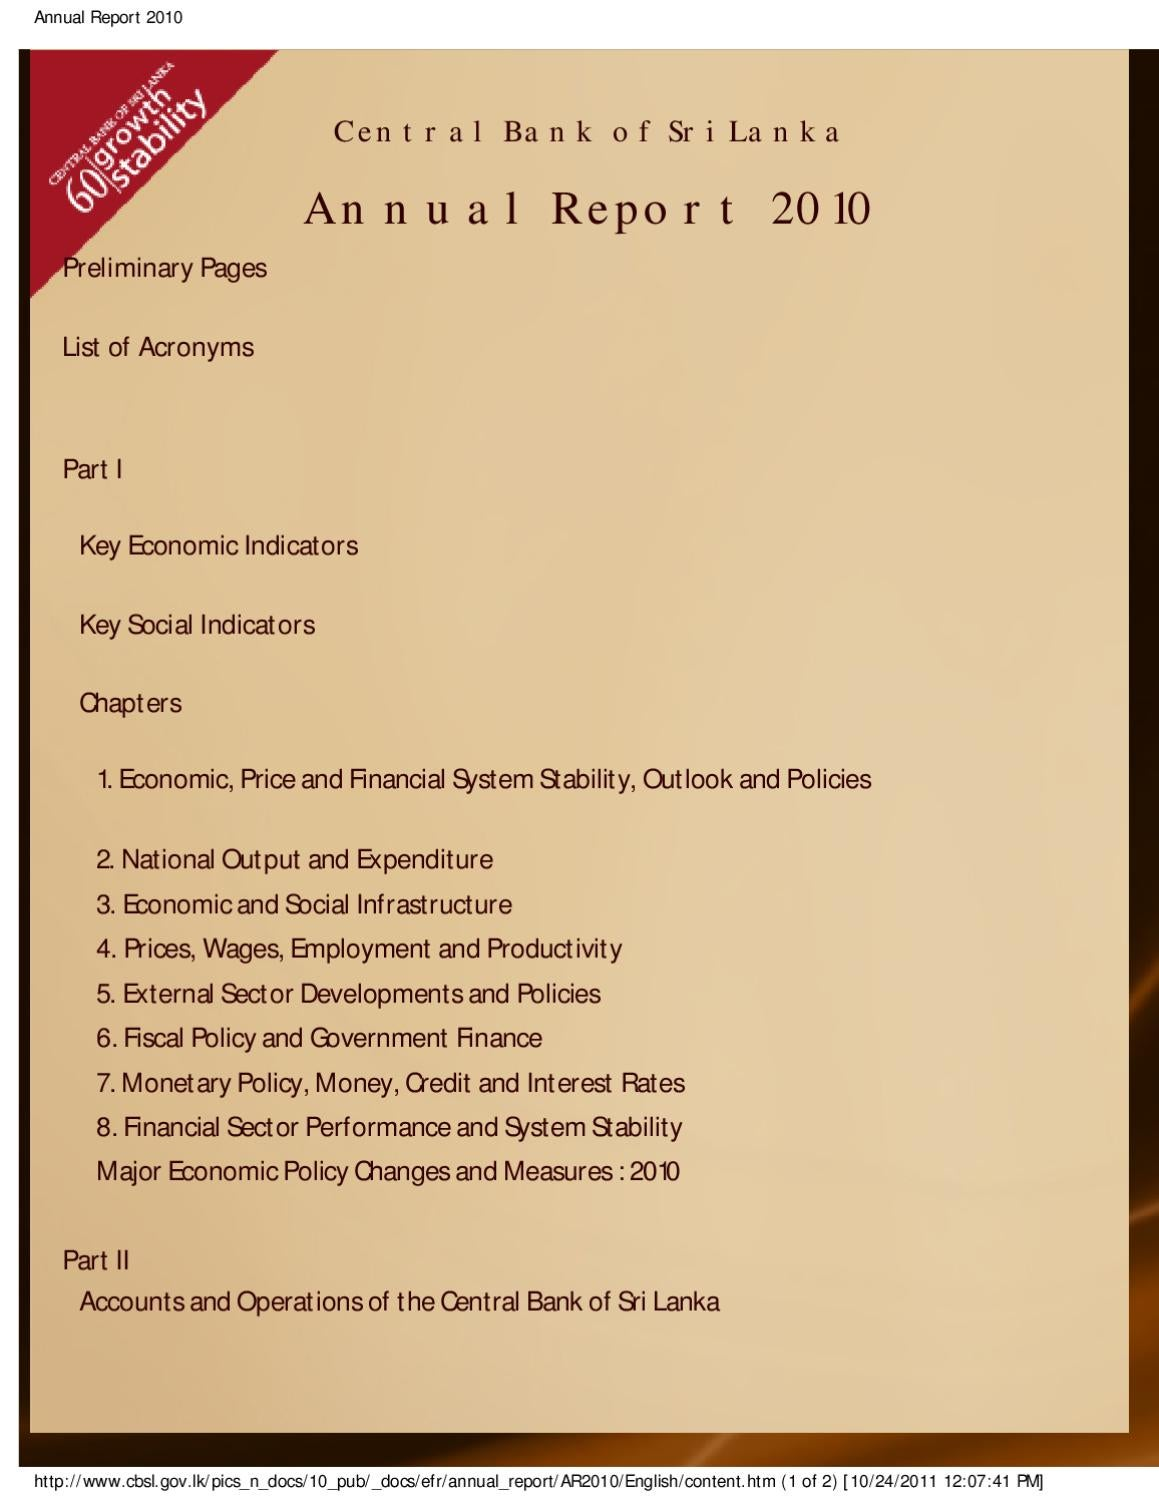 Sri Lanka 2010 Annual Report By Fekade Tadesse Issuu Subsea Bop Control Systems Well Netwas Group Oil